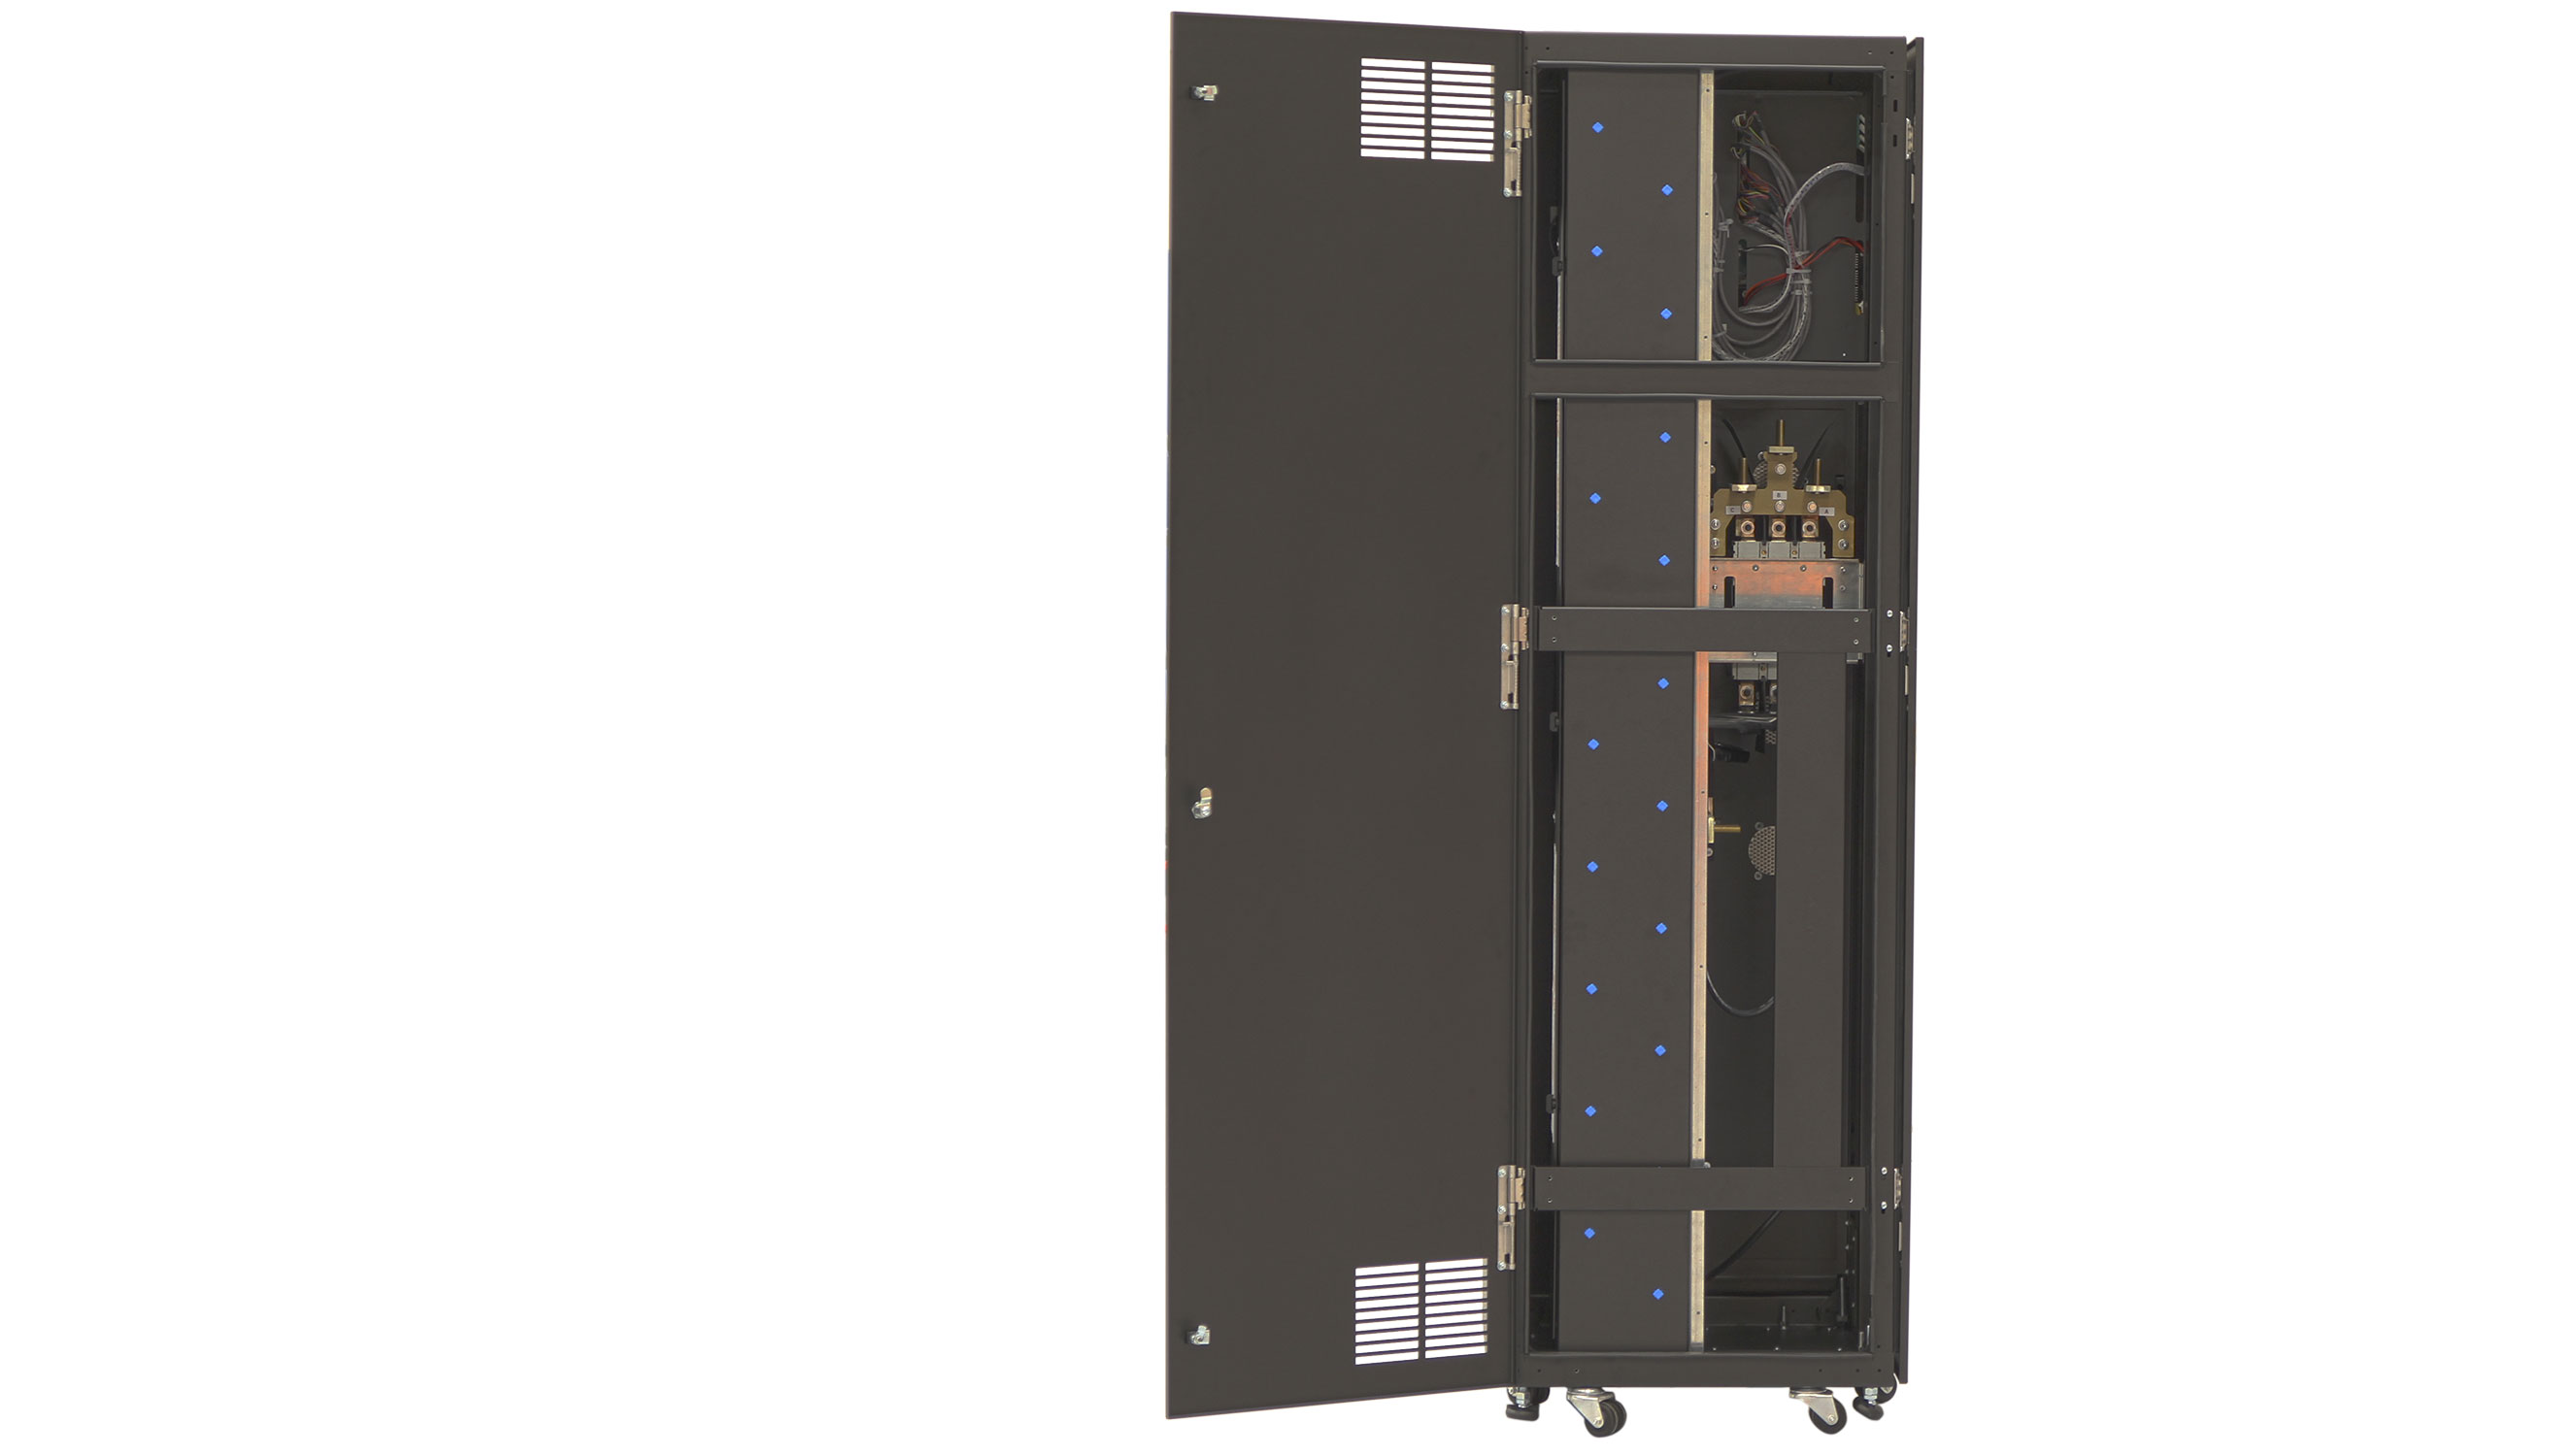 eRPP-FS Mechanical Overview, Rear - Outer Door Open